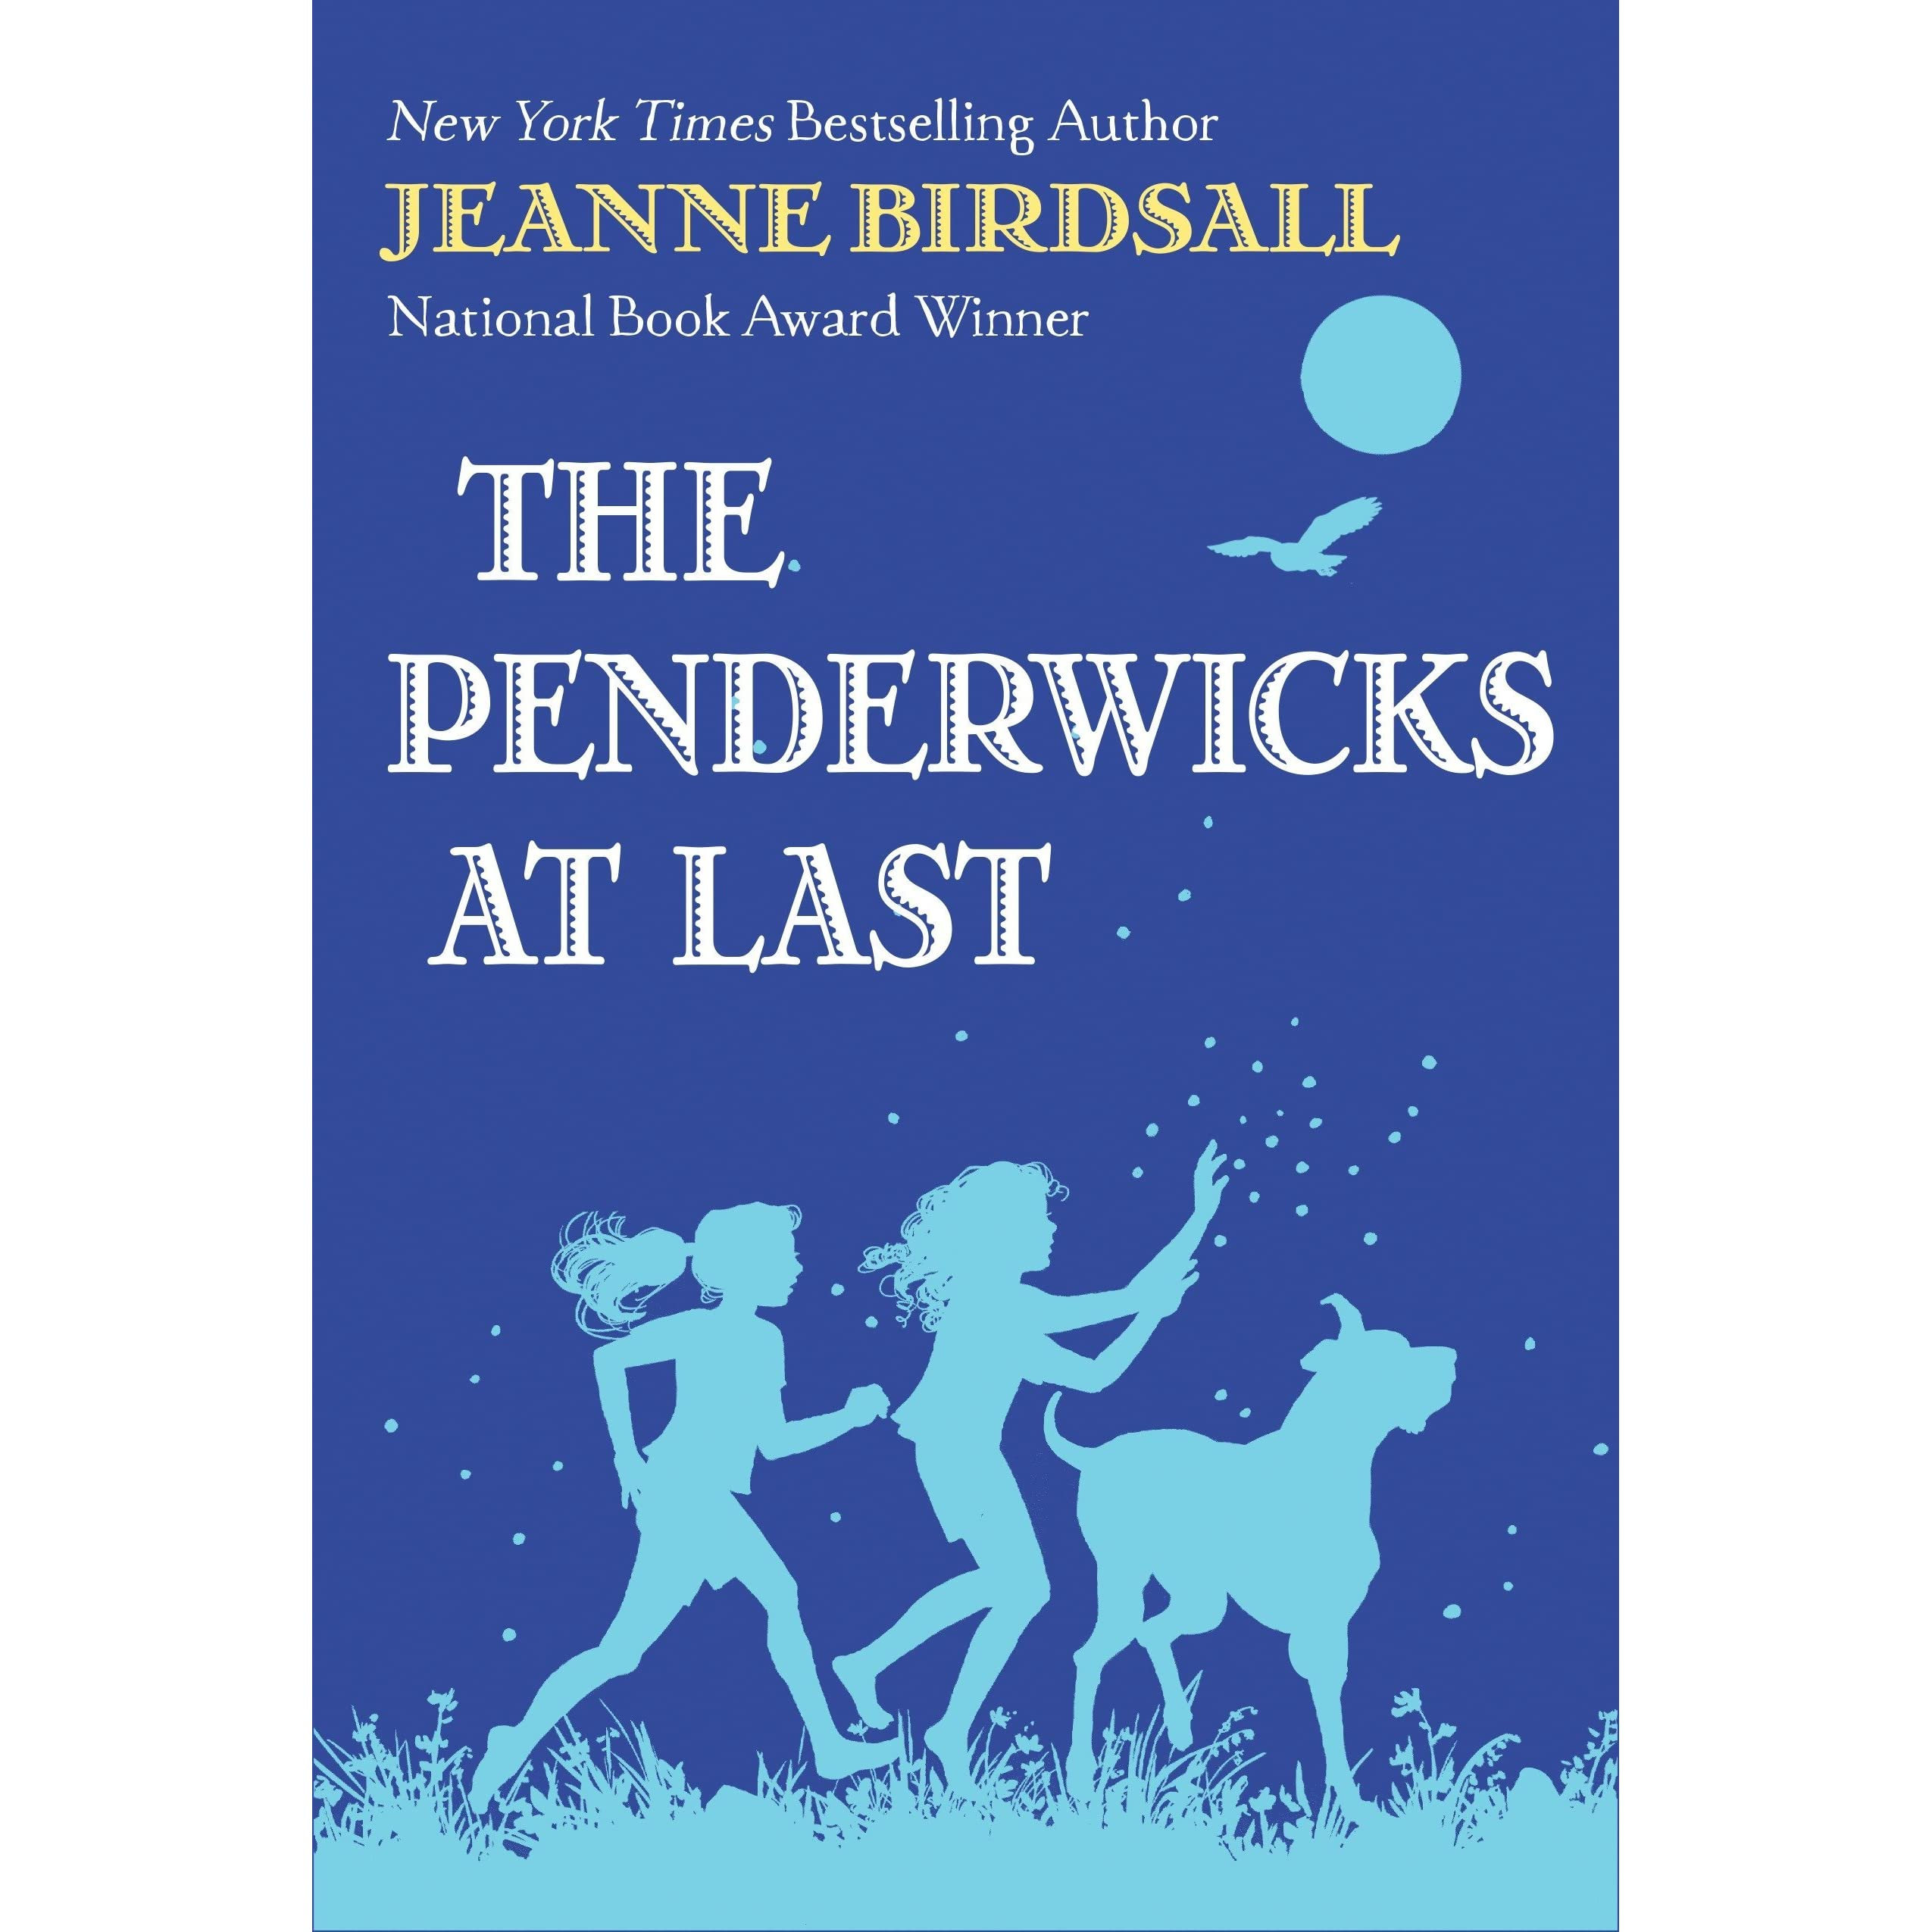 The Penderwicks at Last (The Penderwicks, #5) by Jeanne Birdsall